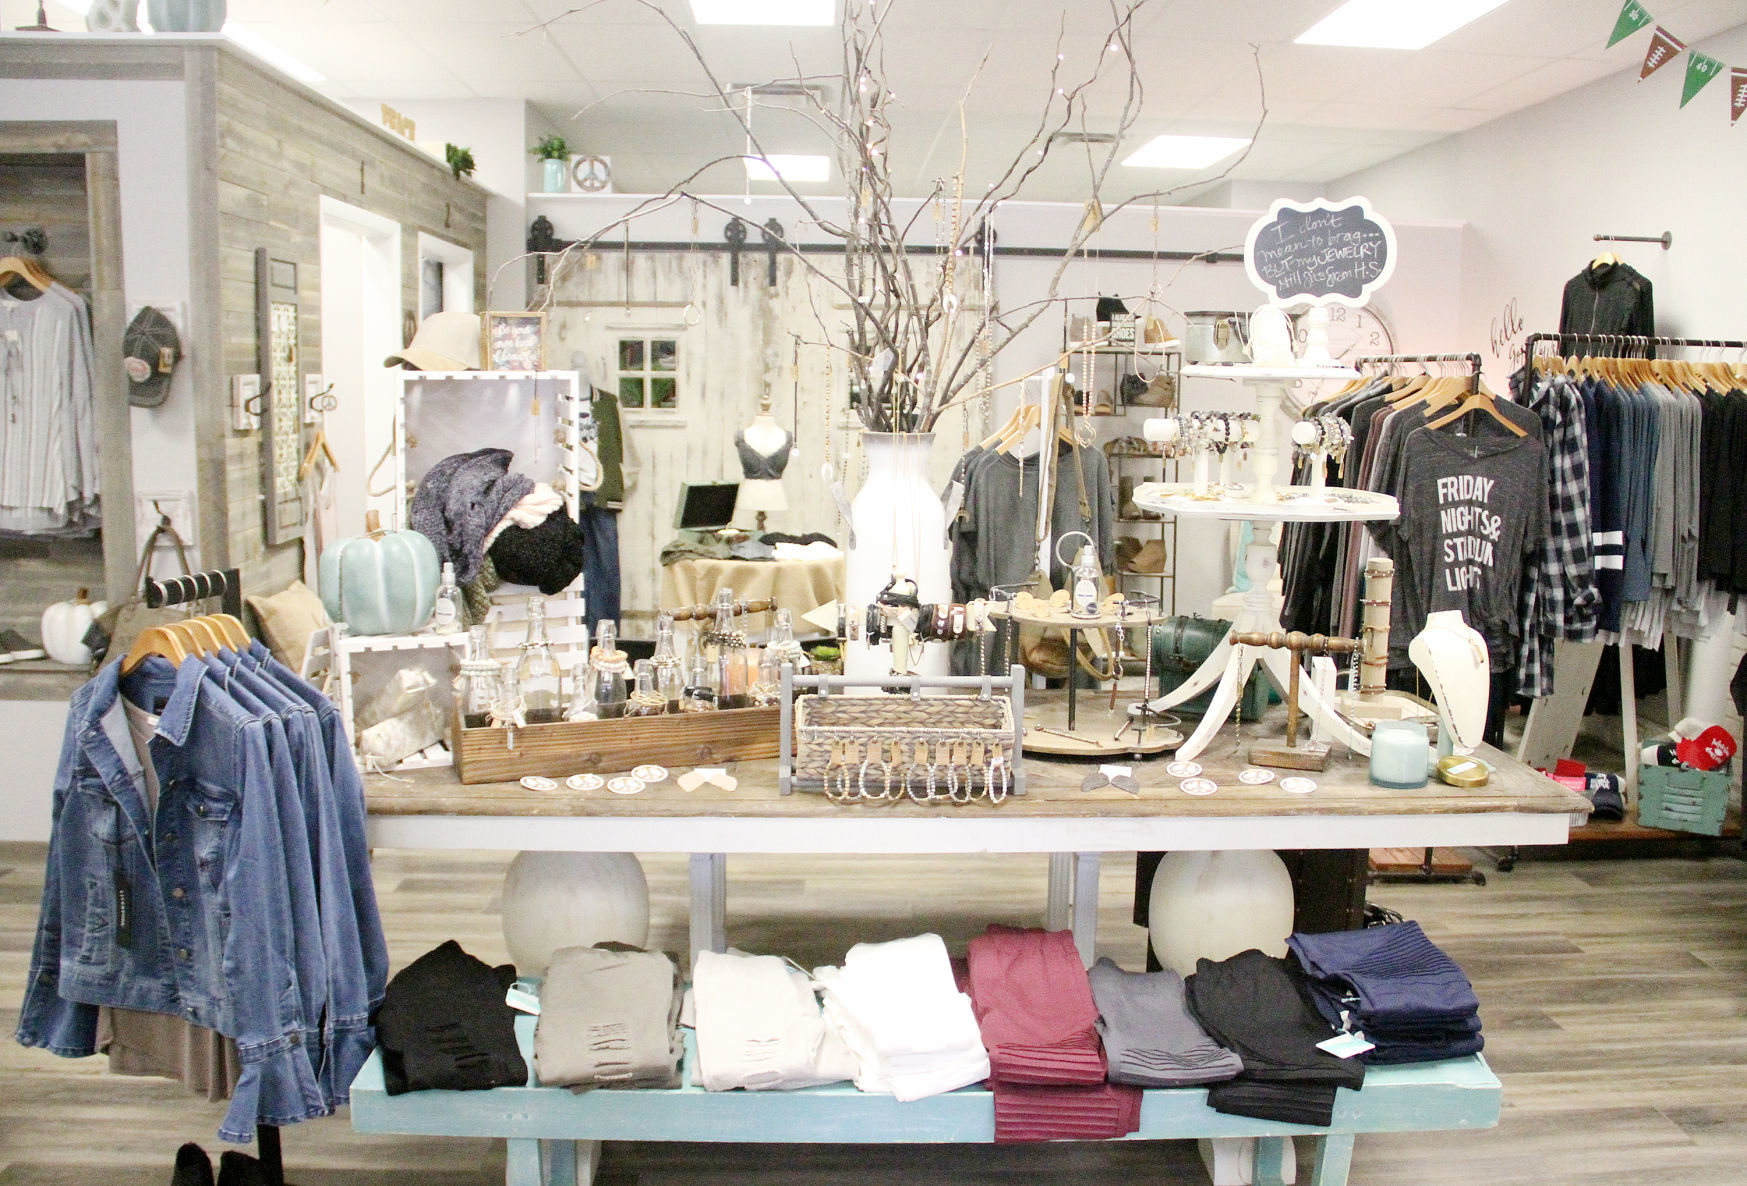 Find your peace' at Bettendorf's latest clothing boutique